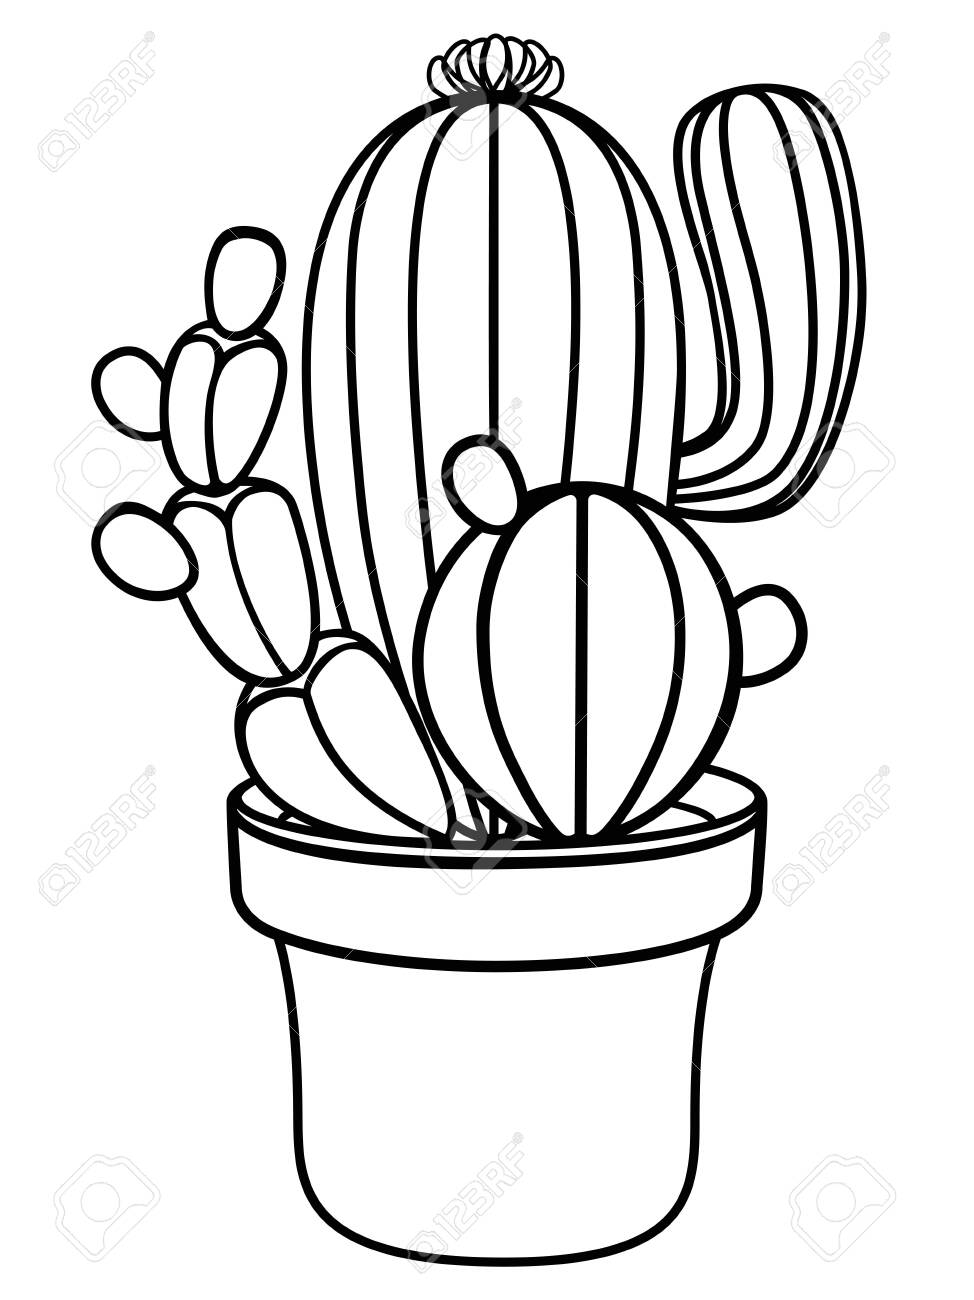 Cacti In A Flower Pot Home Plant Cactus Cacti Linear Picture Royalty Free Cliparts Vectors And Stock Illustration Image 134656844